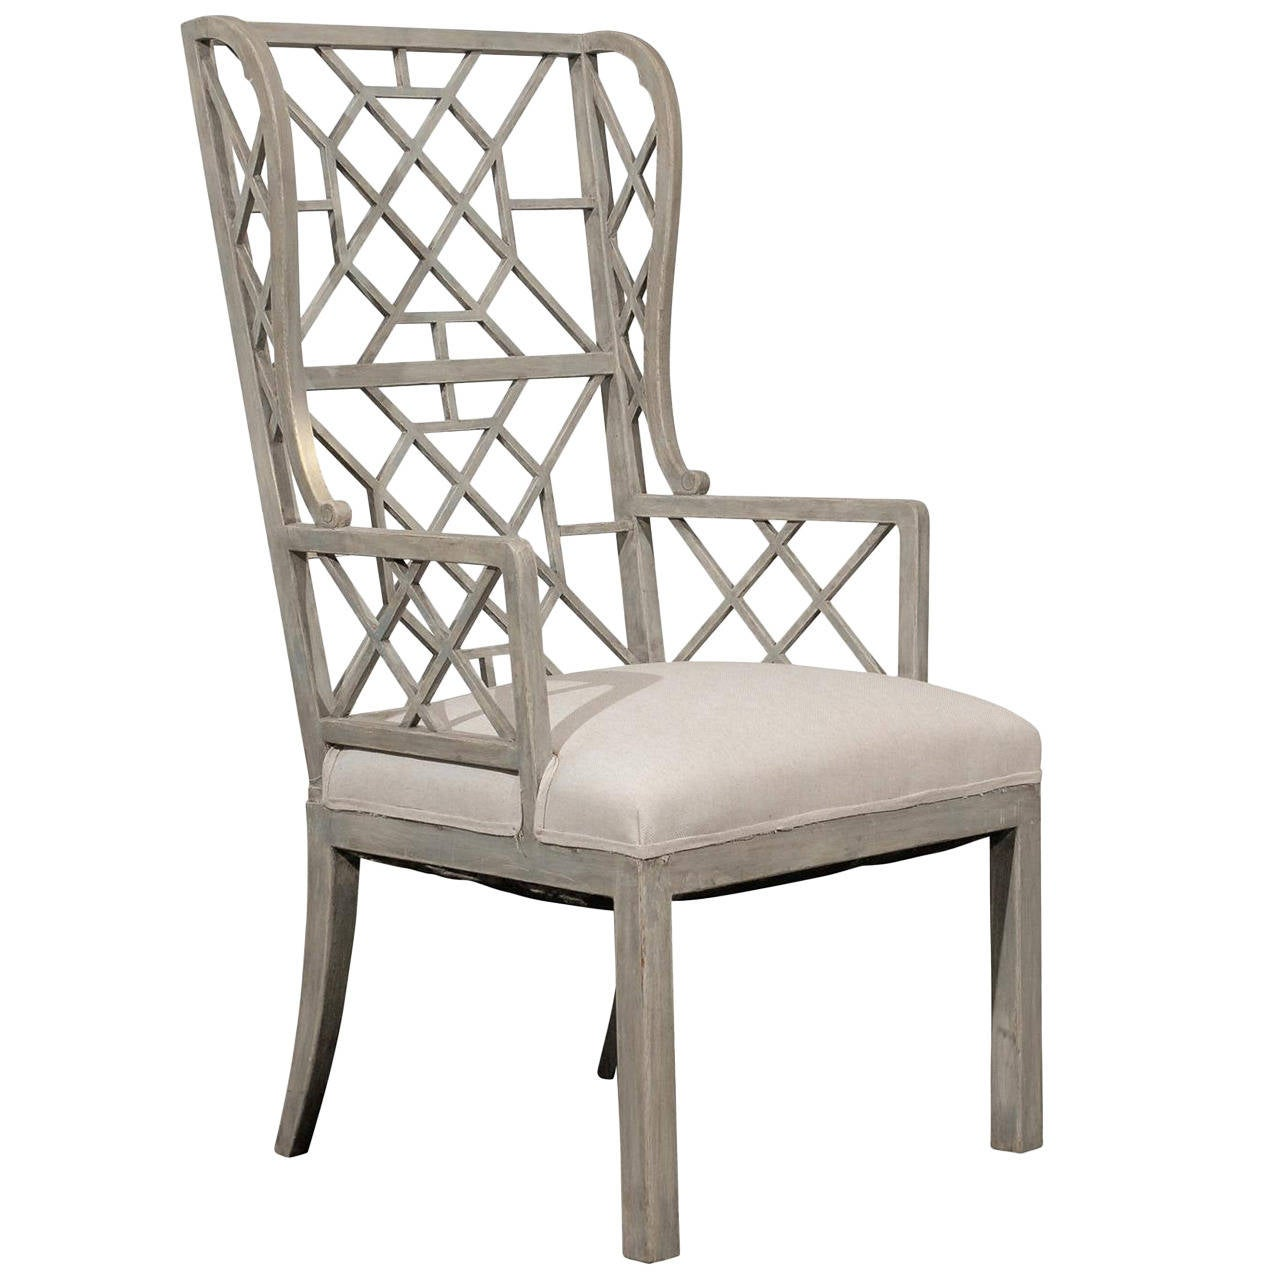 Chinese Chippendale Light Grey Or Blue Painted Wood High Back Chair At 1stdibs